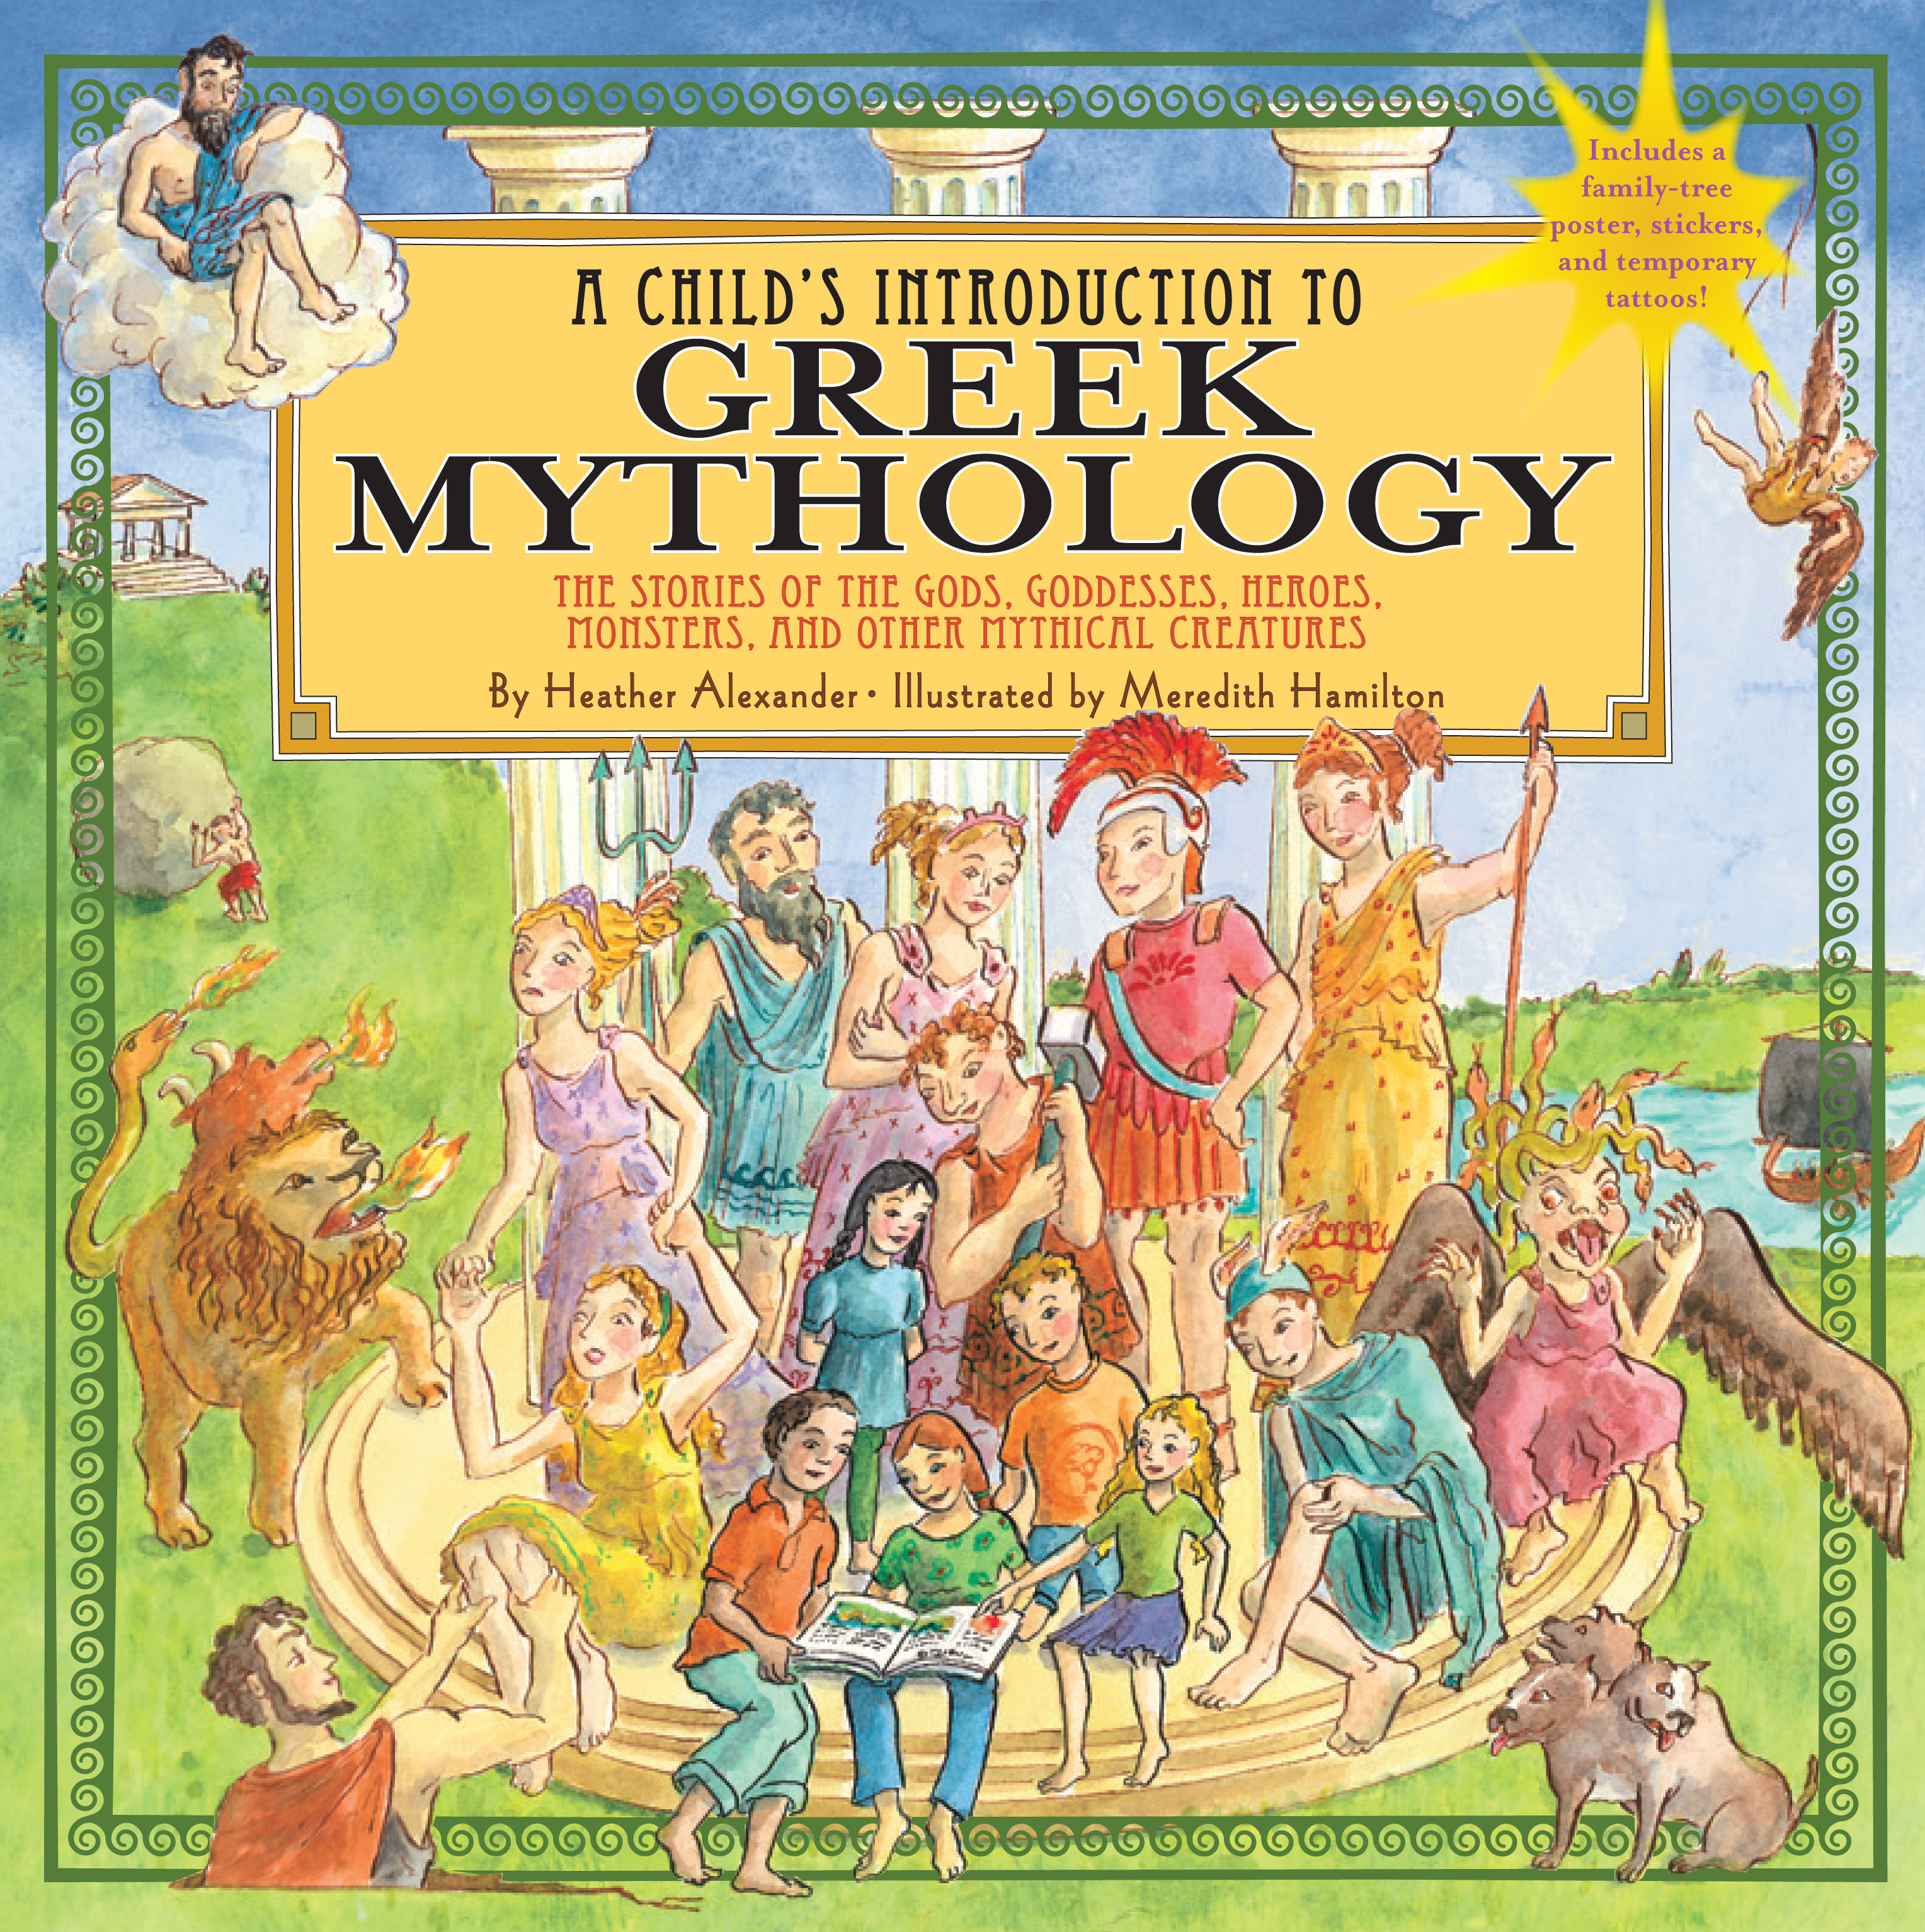 Child's Introduction to Greek Mythology: The Stories of the Gods, Goddesses, Heroes, Monsters, and Other Mythical Creatures [With Sticker(s) and Poste (Hardcover)